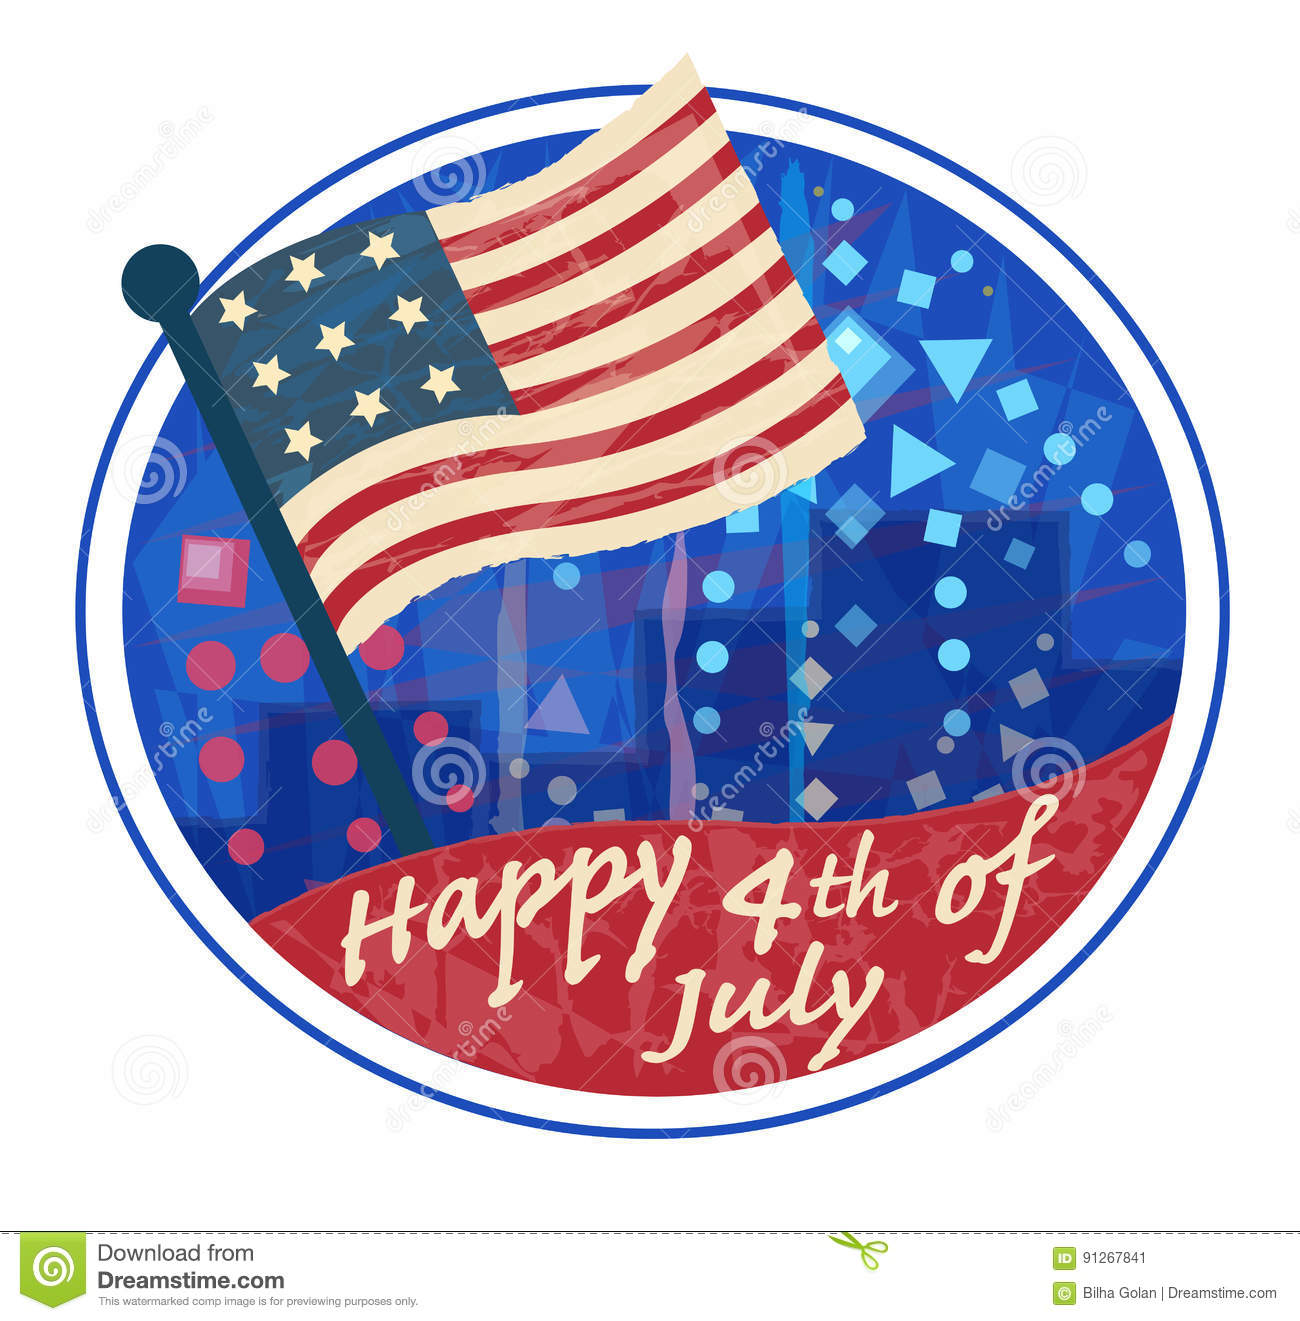 Fourth of July Clip art stock vector. Illustration of design.